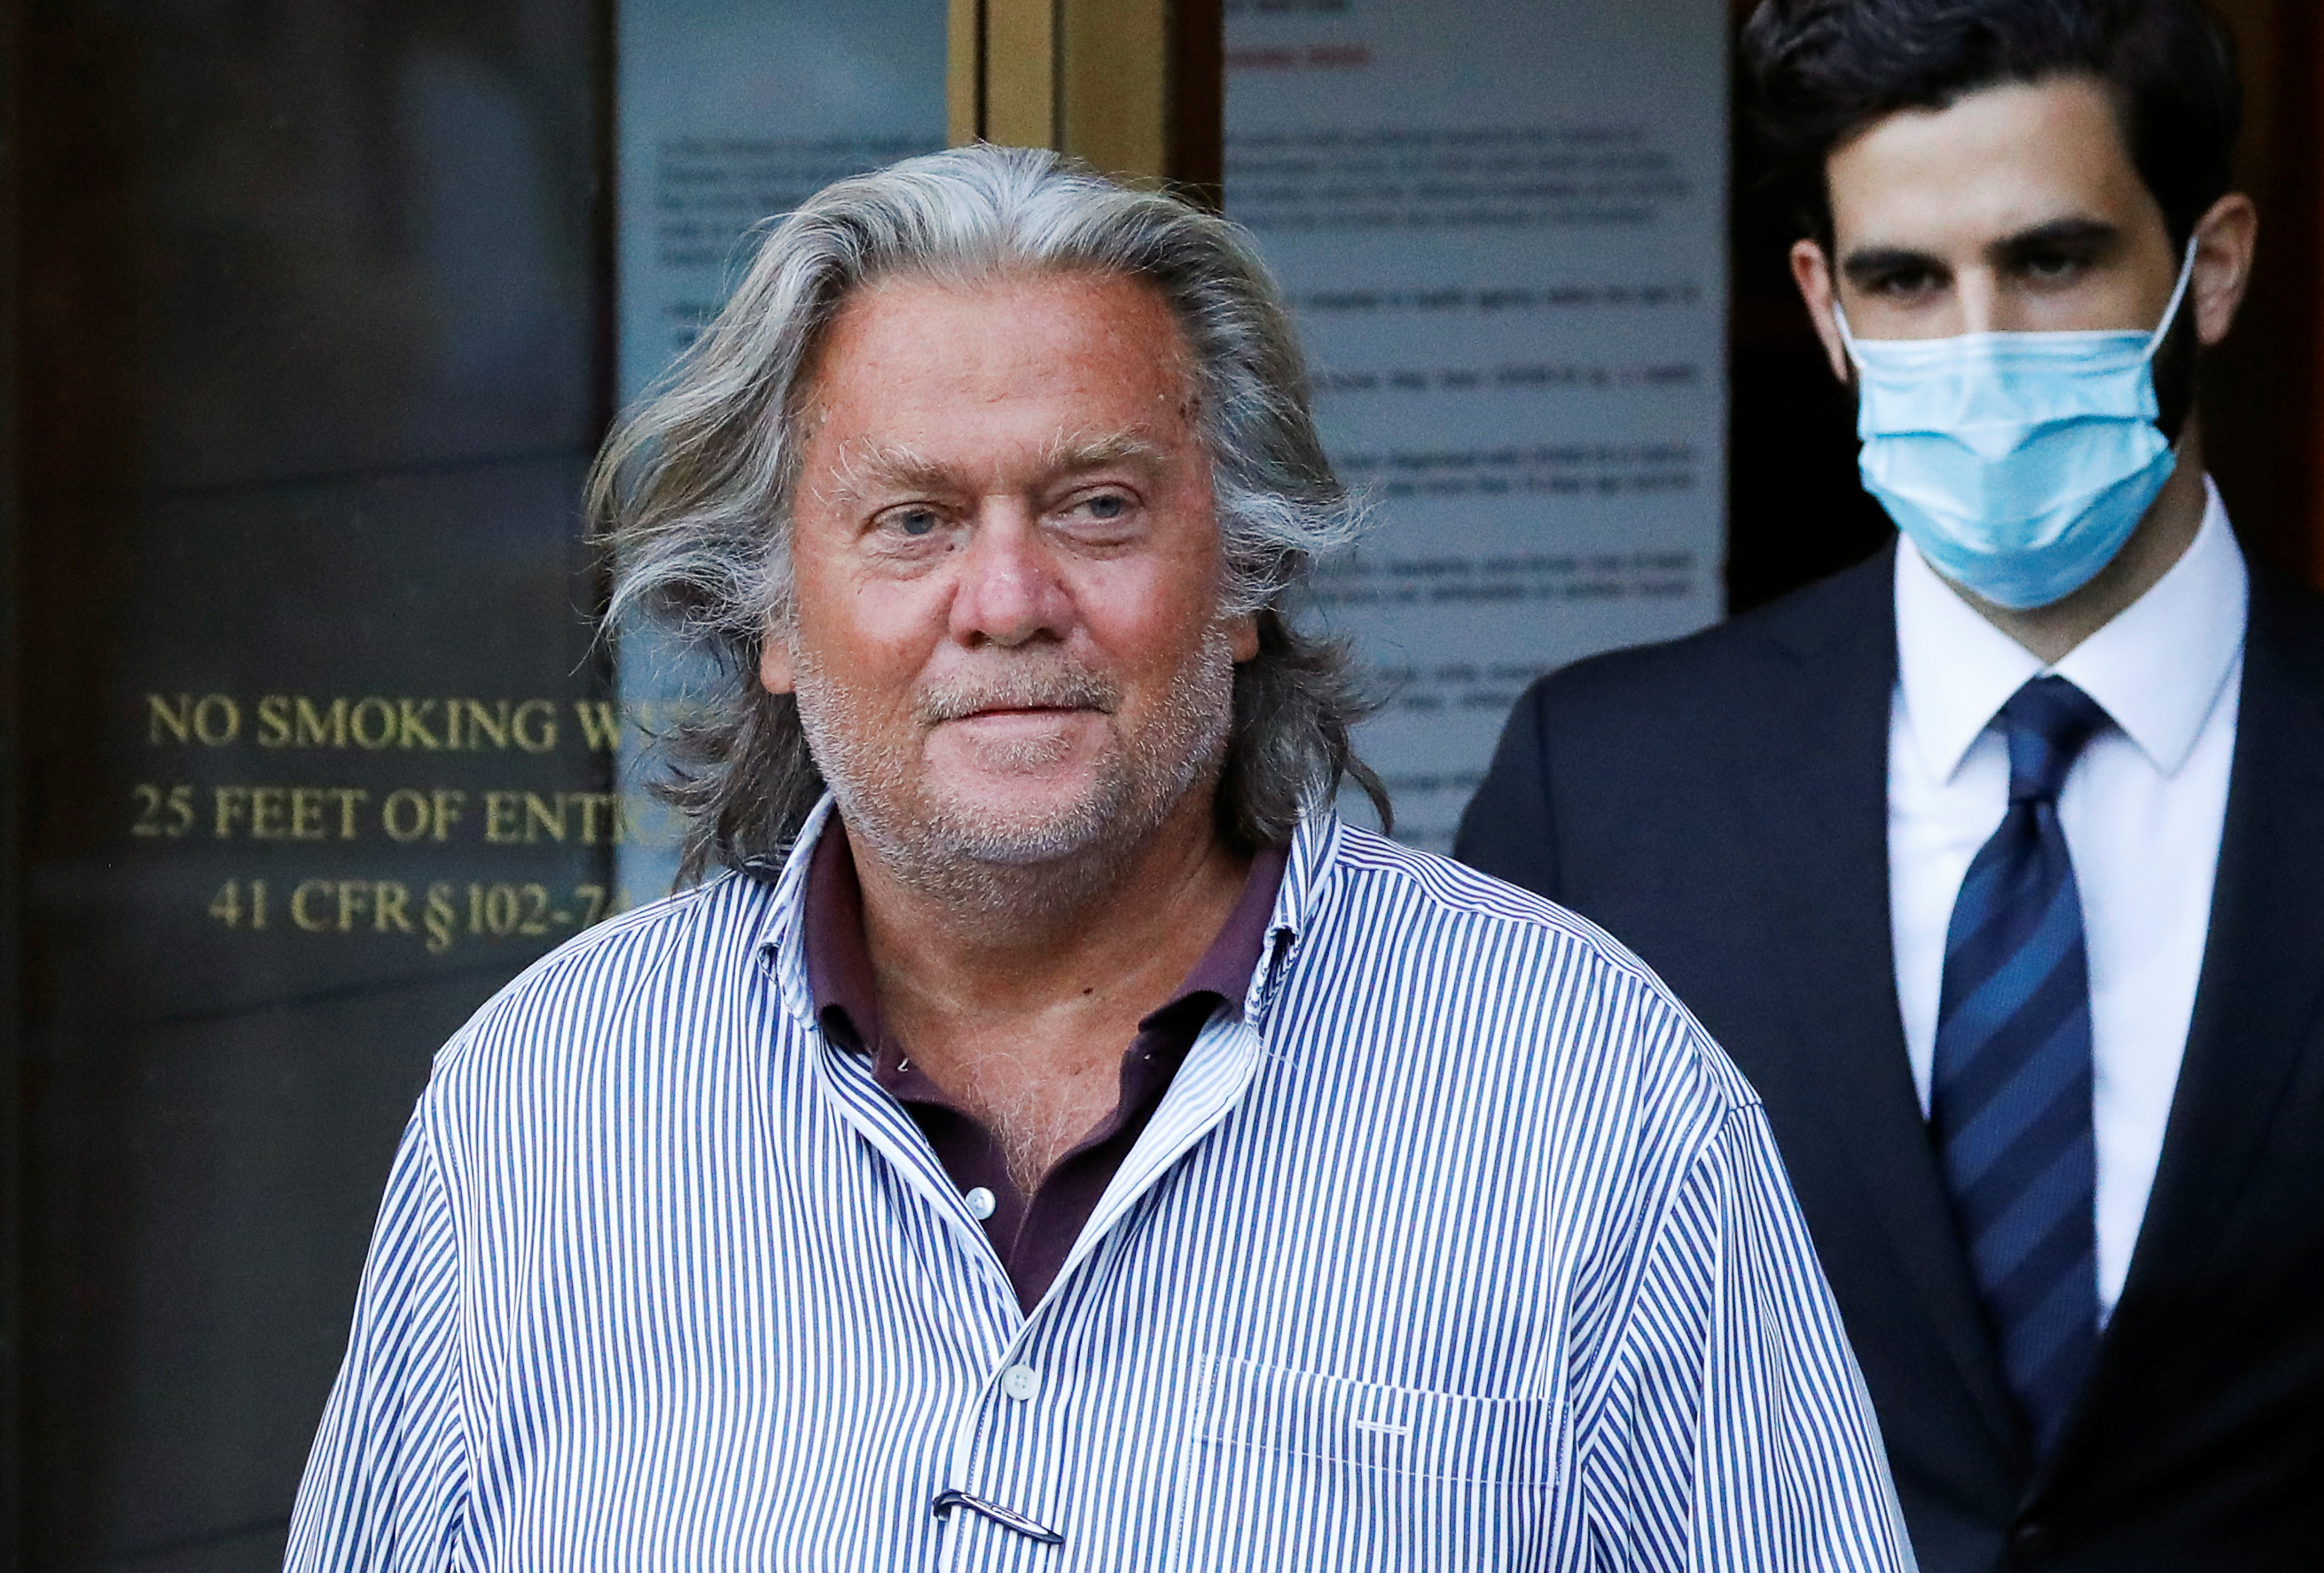 Former White House Chief Strategist Steve Bannon exits the Manhattan Federal Court, following his arraignment hearing for conspiracy to commit wire fraud and conspiracy to commit money laundering, in the Manhattan borough of New York City, New York, U.S. August 20, 2020. REUTERS/Andrew Kelly